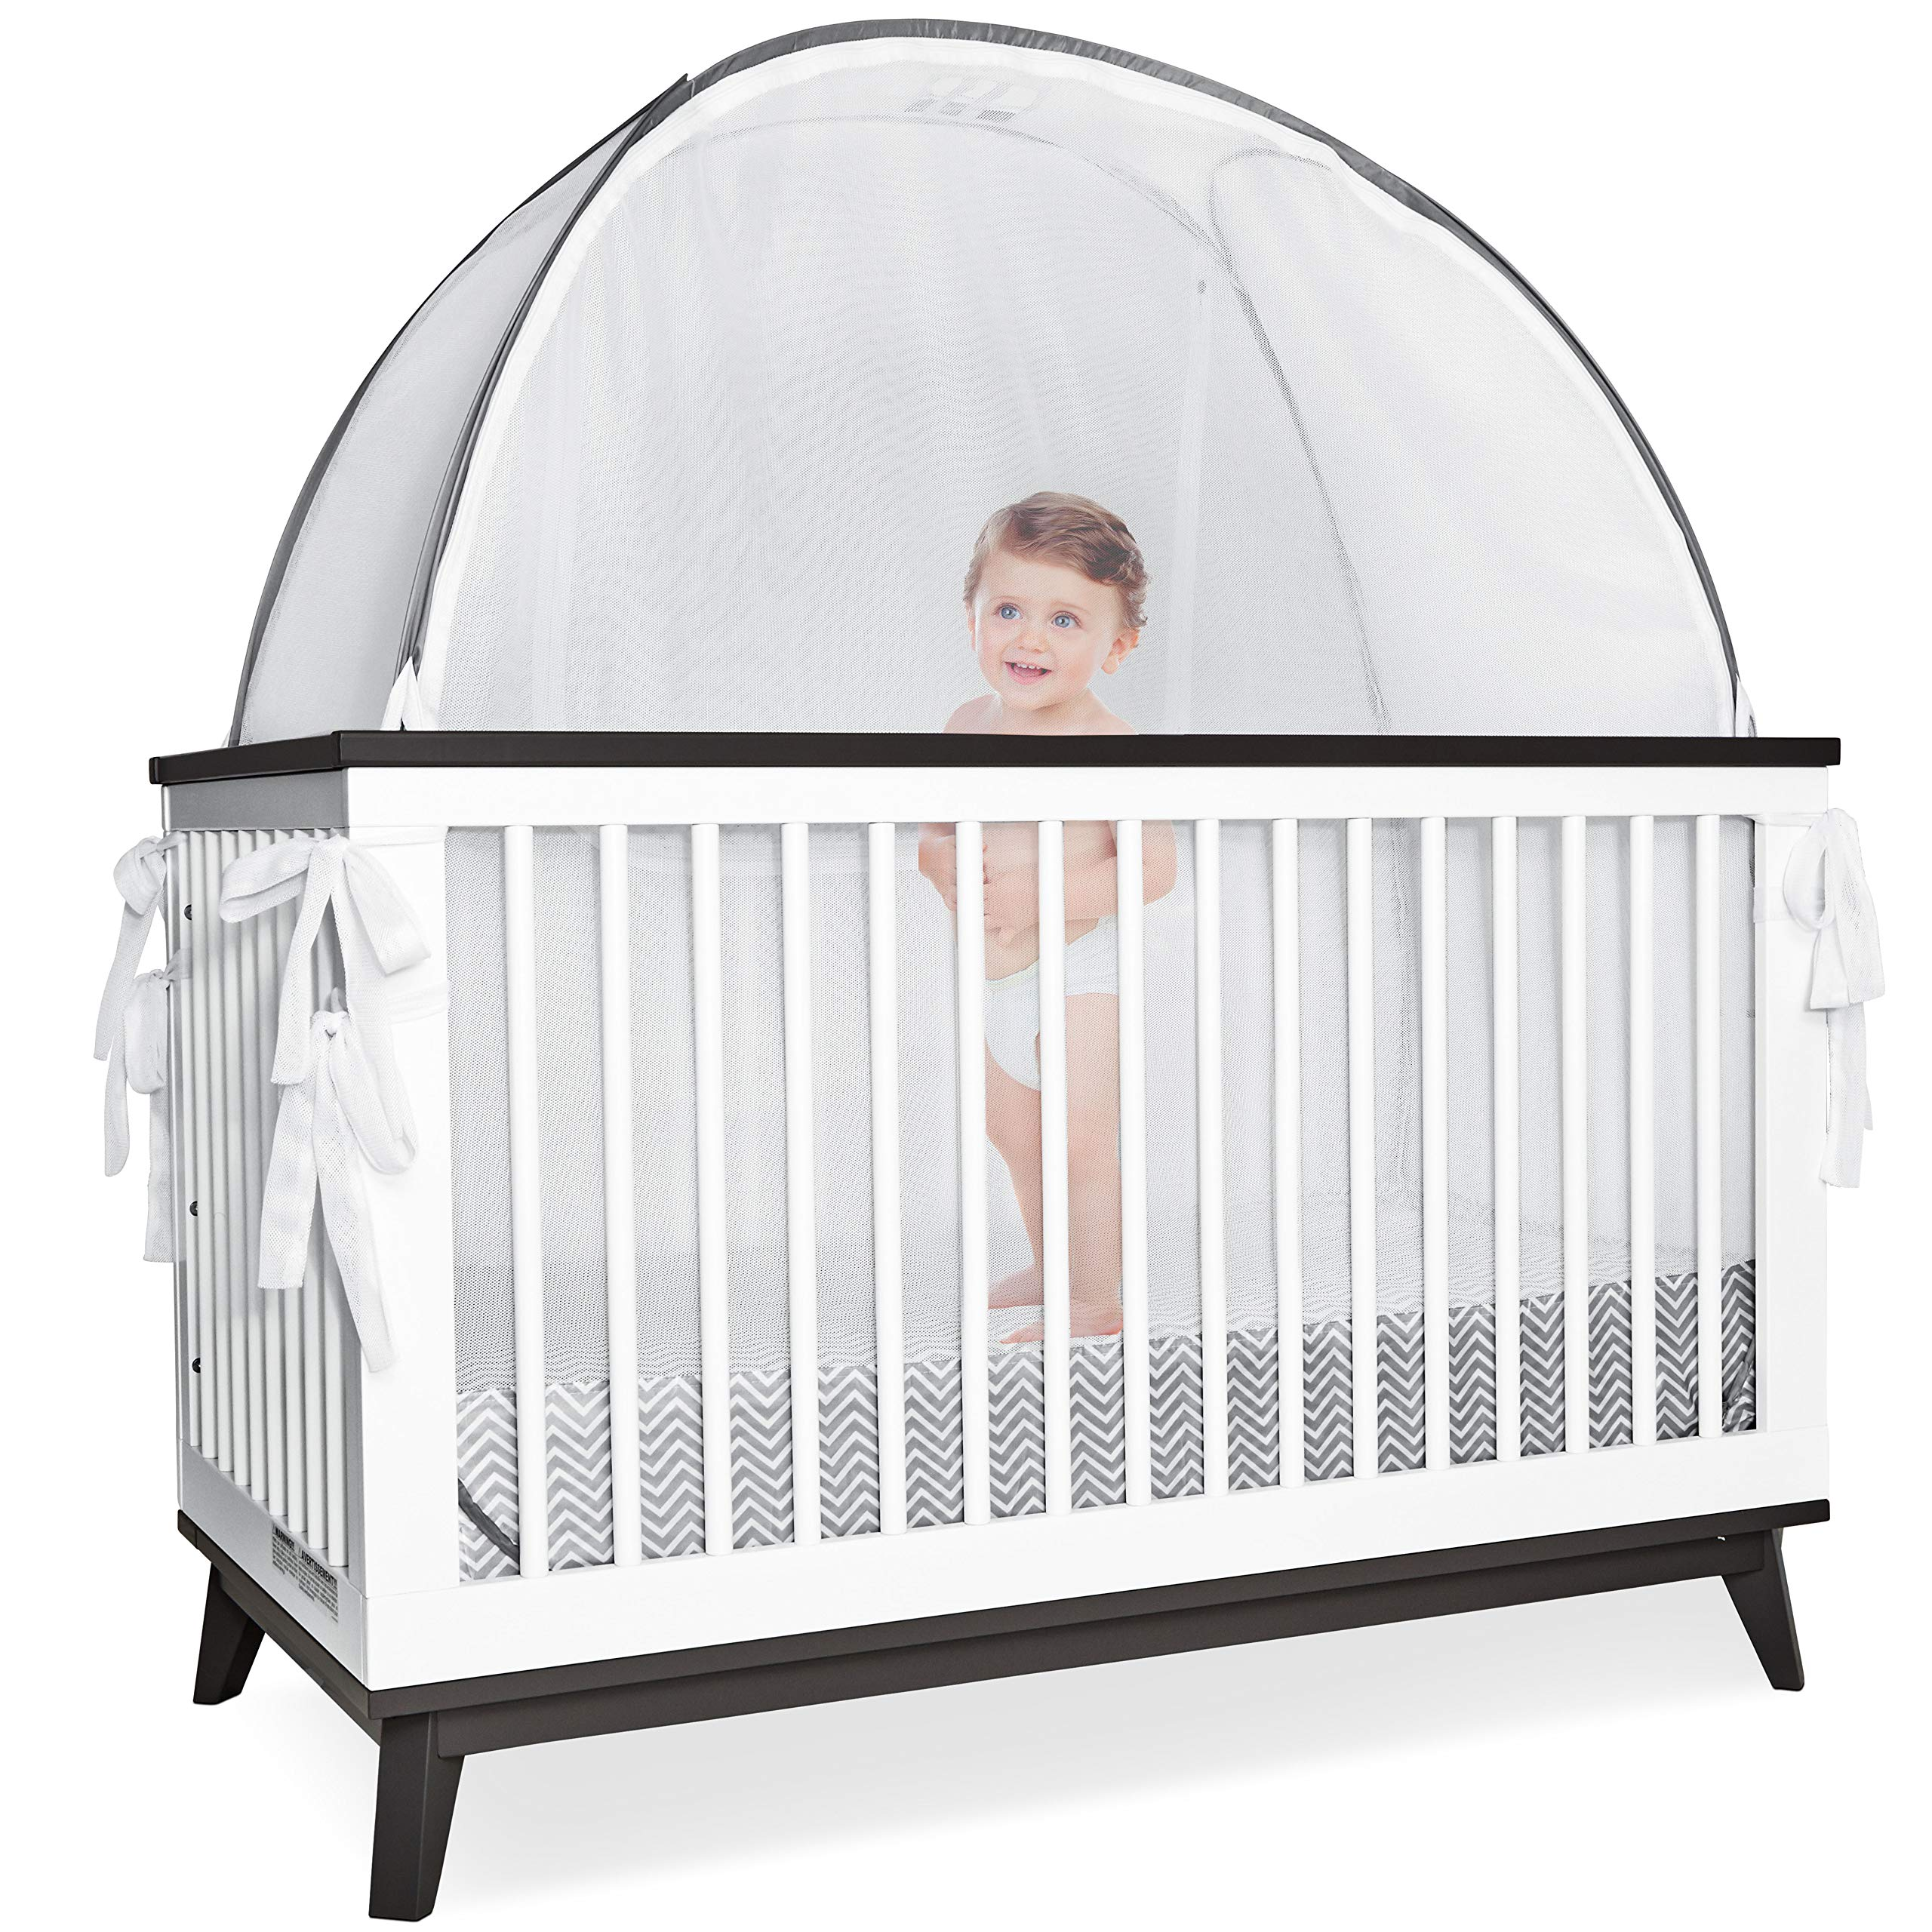 Grey Baby Canopy Cover -Safety Pop Up Tent - See Through Crib and Nursery Soft Mesh Cover, Net with New Viewing Window - Zippered Safety Top for Mosquito Bites and Falling Protection for Infants by 1st Baby Safety